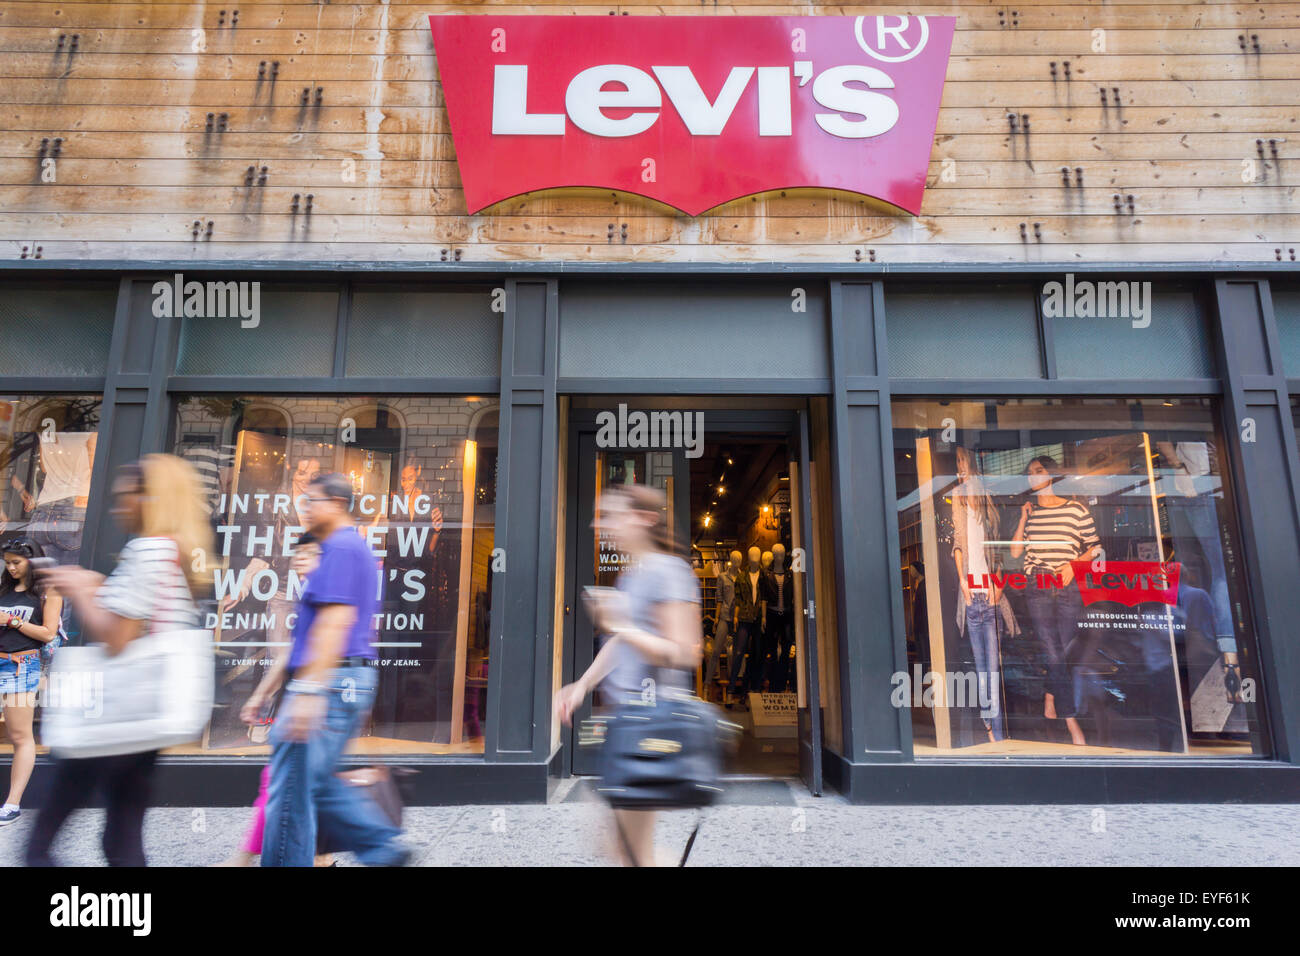 Get Levi's Jeans at really economic prices at OMG stores Posted by Memo on October 17 | Leave a Comment In New York, many places sell Levi's Jeans, but the best deal I found is in OMG chain stores.